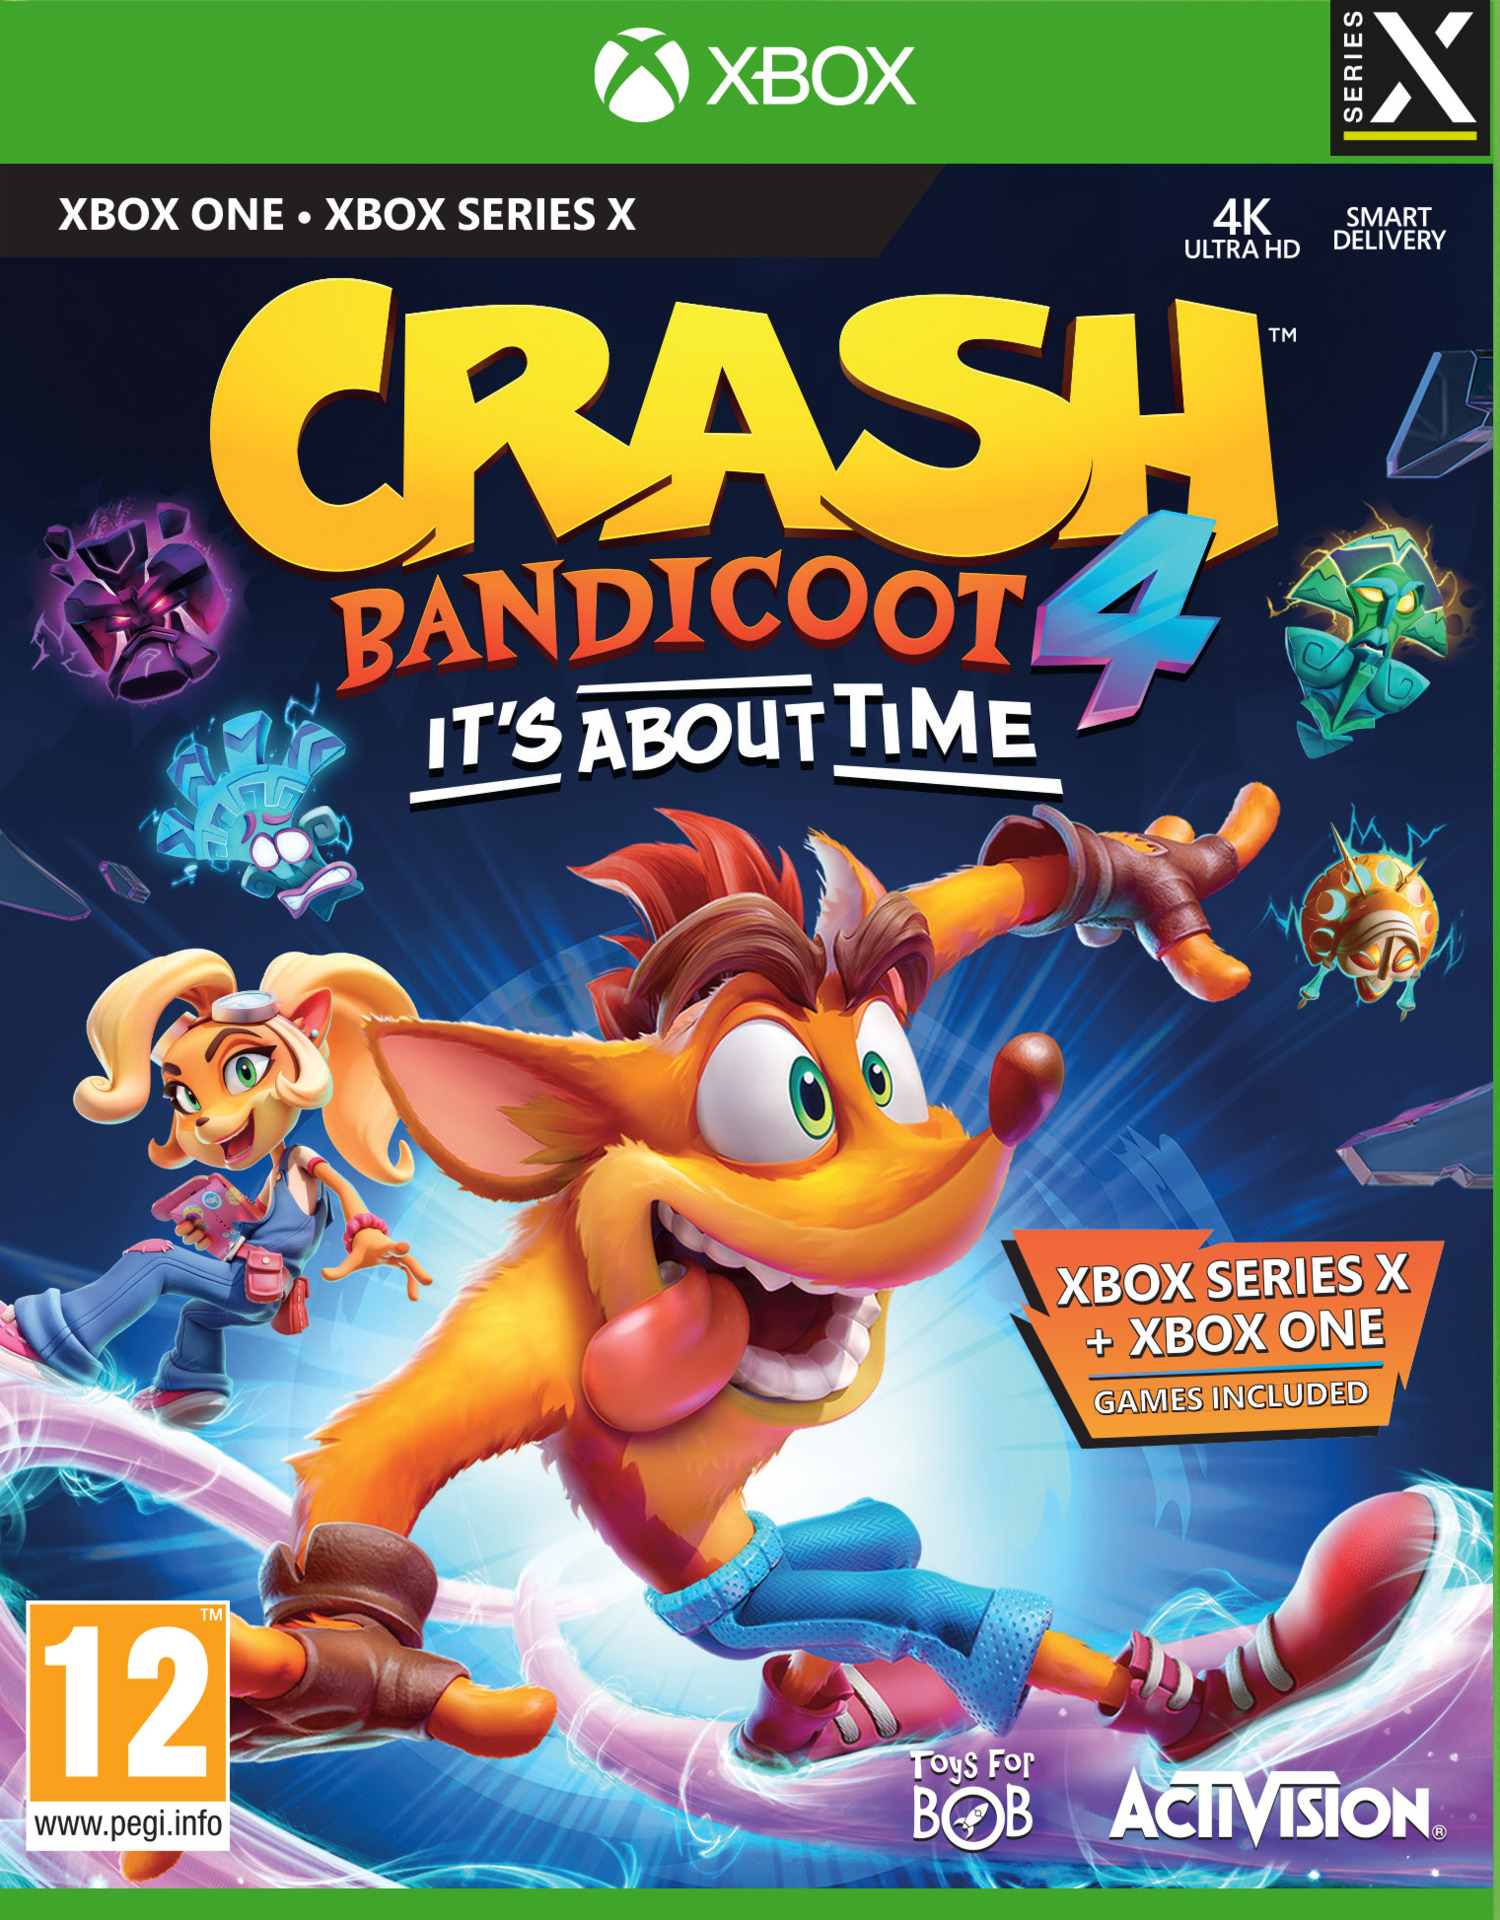 Crash Bandicoot 4: It's About Time (XONE)